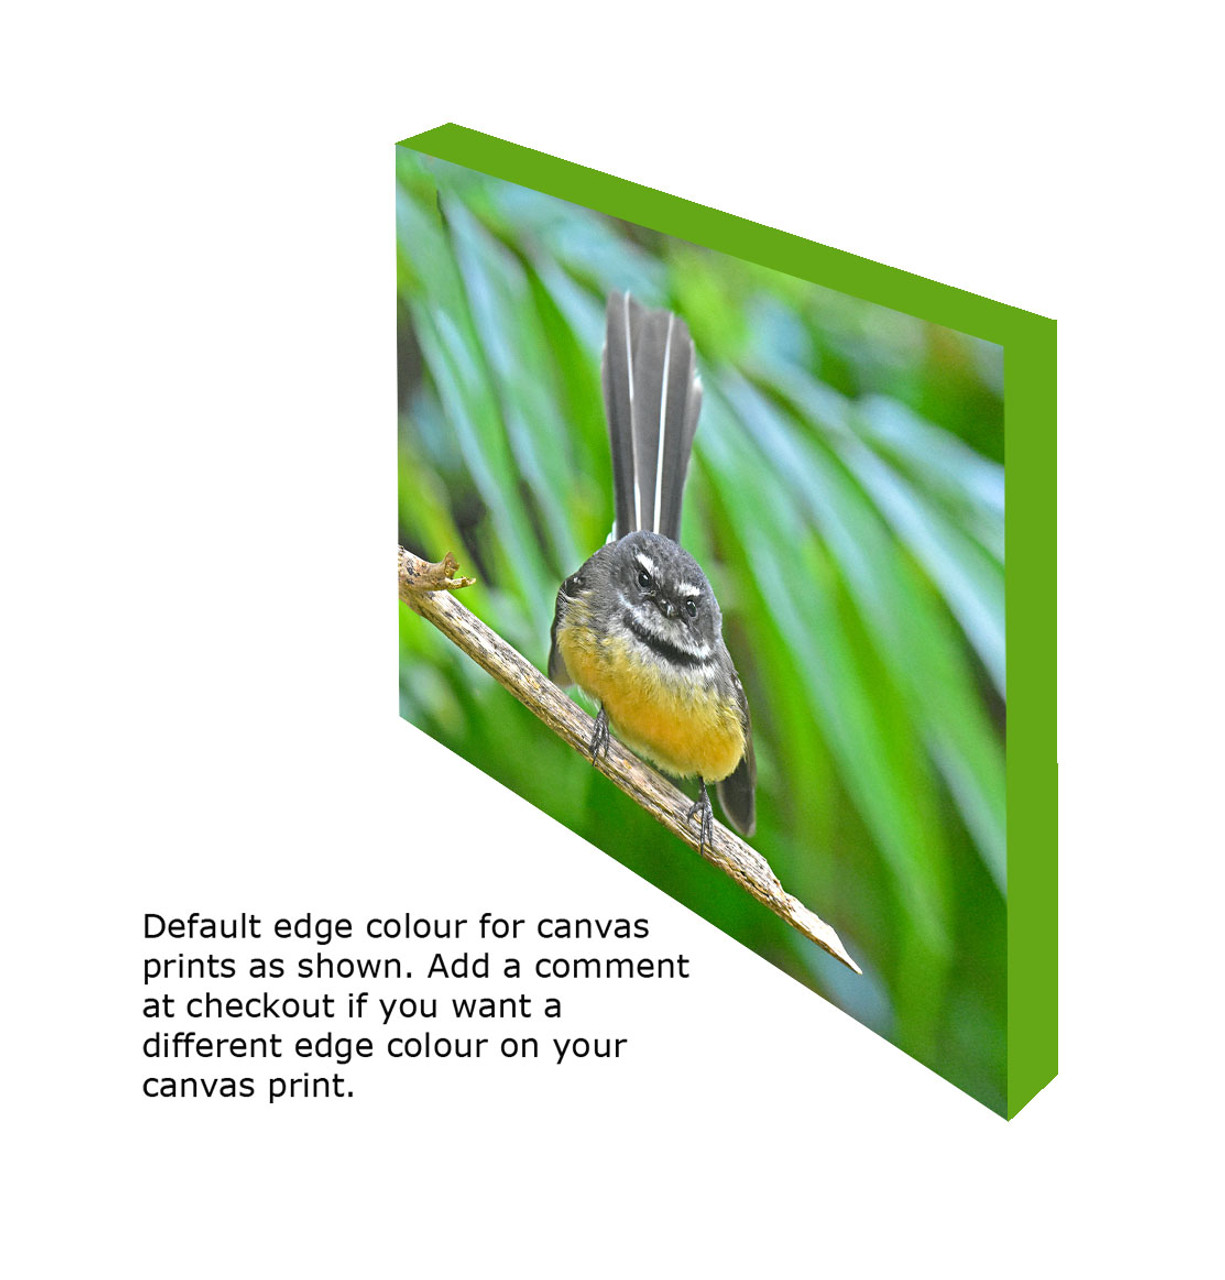 374ec00141c Fantail (P wakawaka)  Canvas print showing default edge colour ...